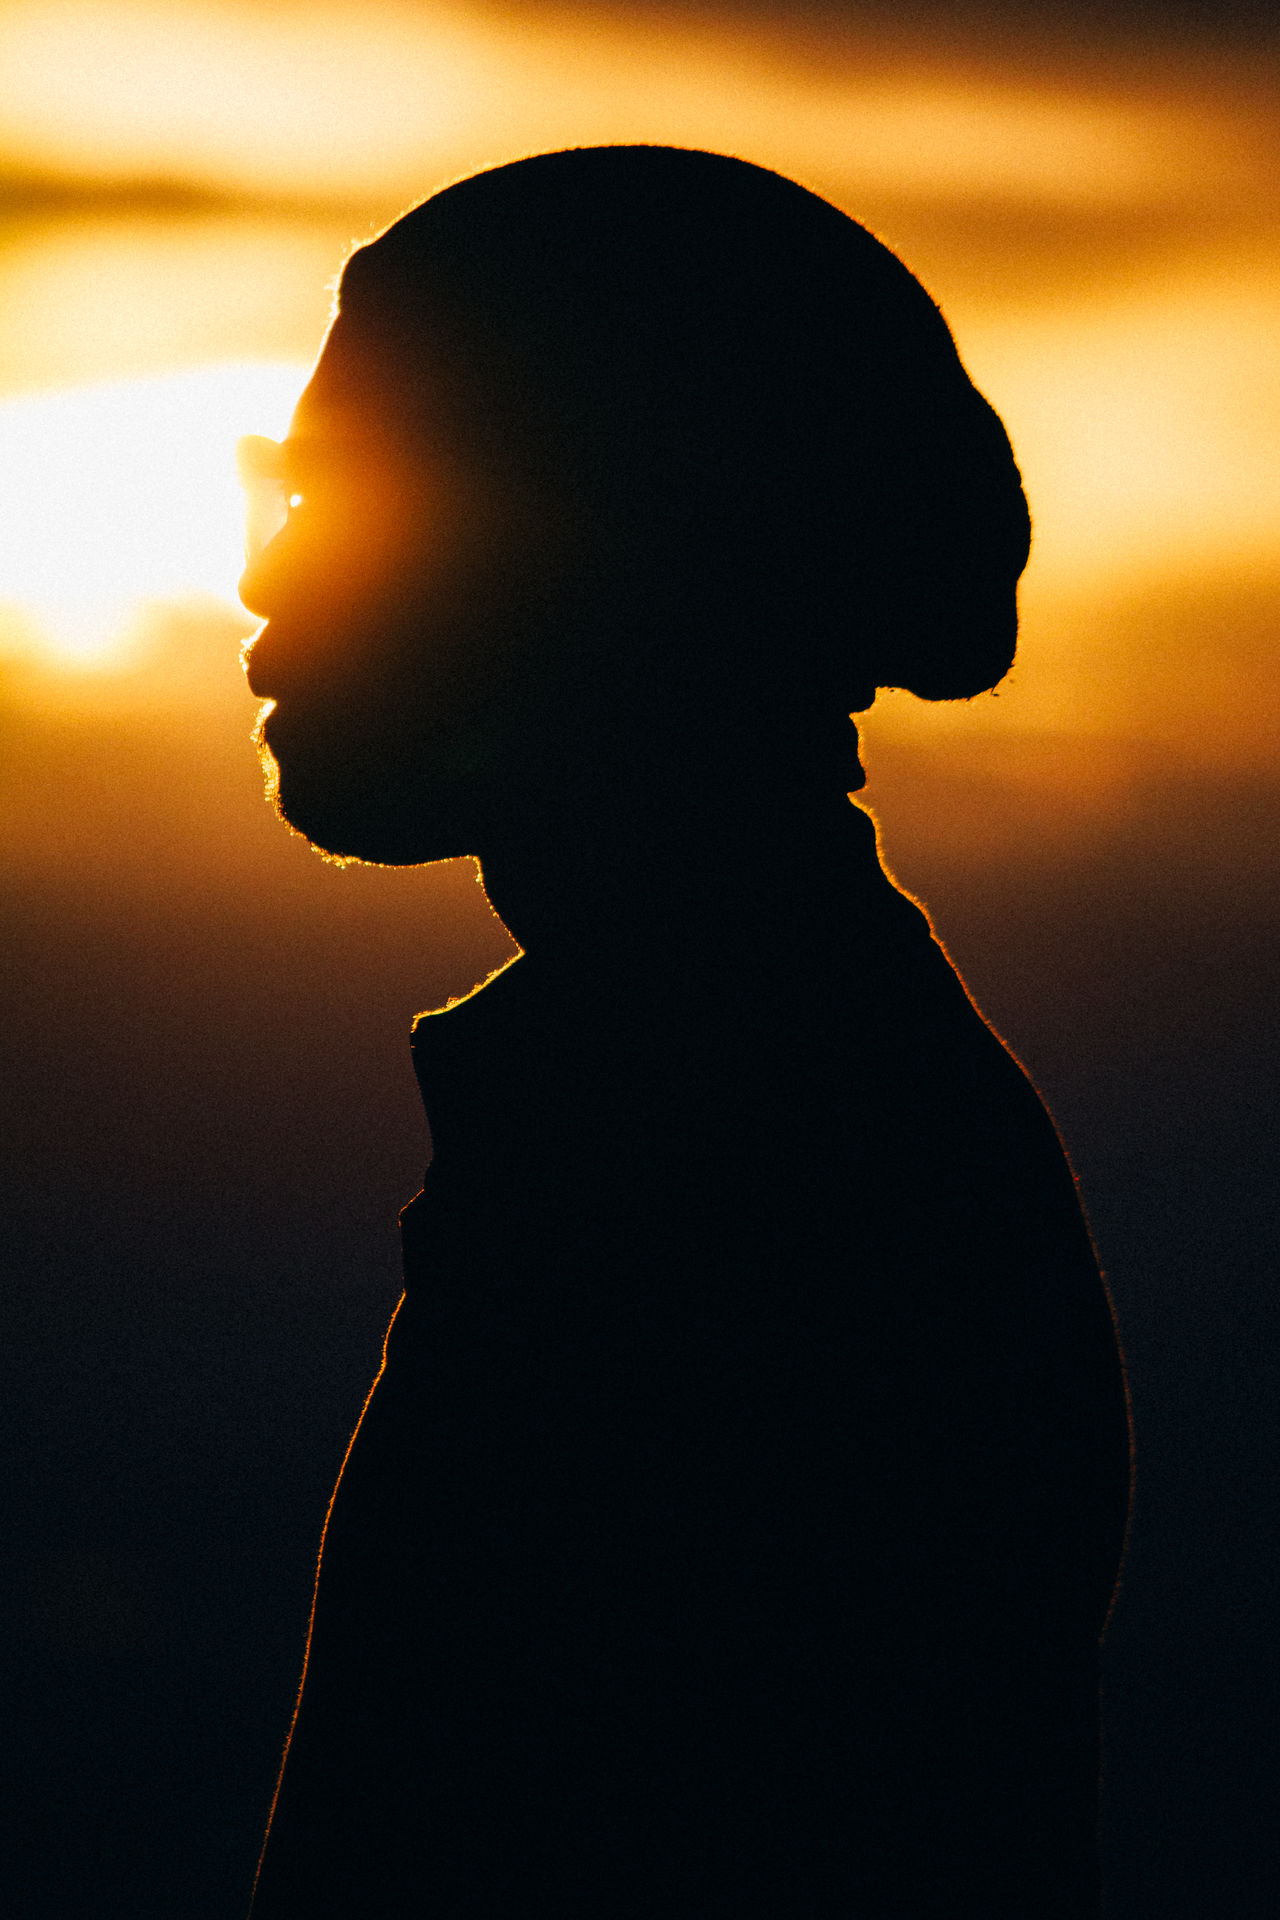 Adult Back Lit Close-up Day Human Body Part Males  Men One Man Only One Person One Young Man Only Only Men People Person Silhouette Sunglasses Sunset Sunset Silhouettes Vertical Young Adult Majestic Magic Hour Light Dark Single Evening